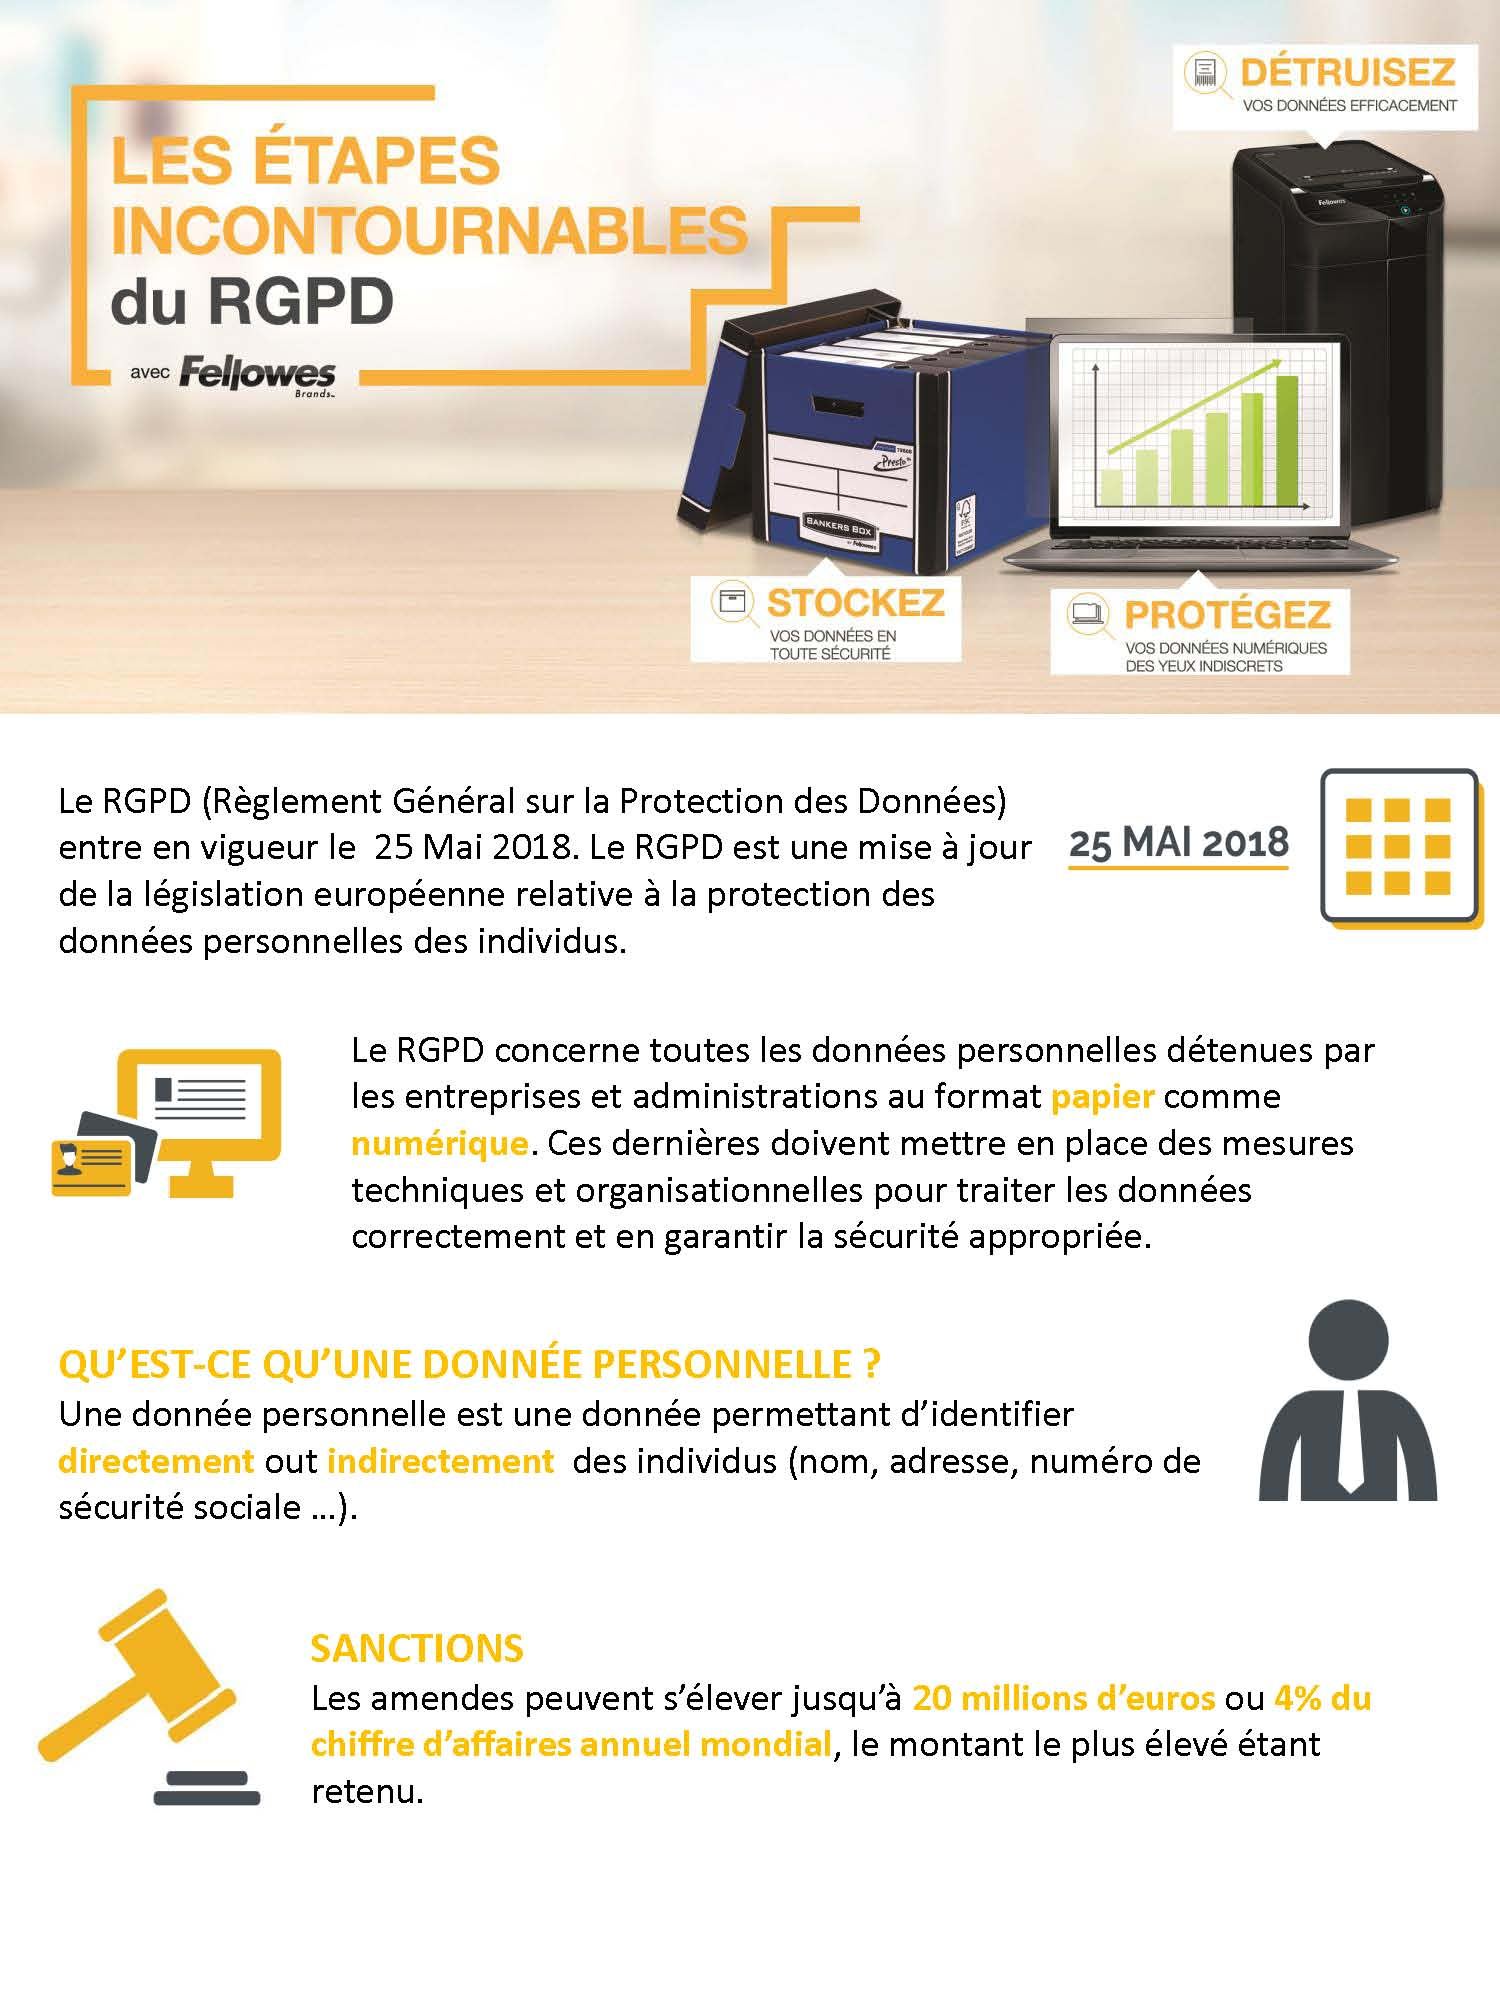 norme-RGPD-bureau-vallee-fellowes_Page_1